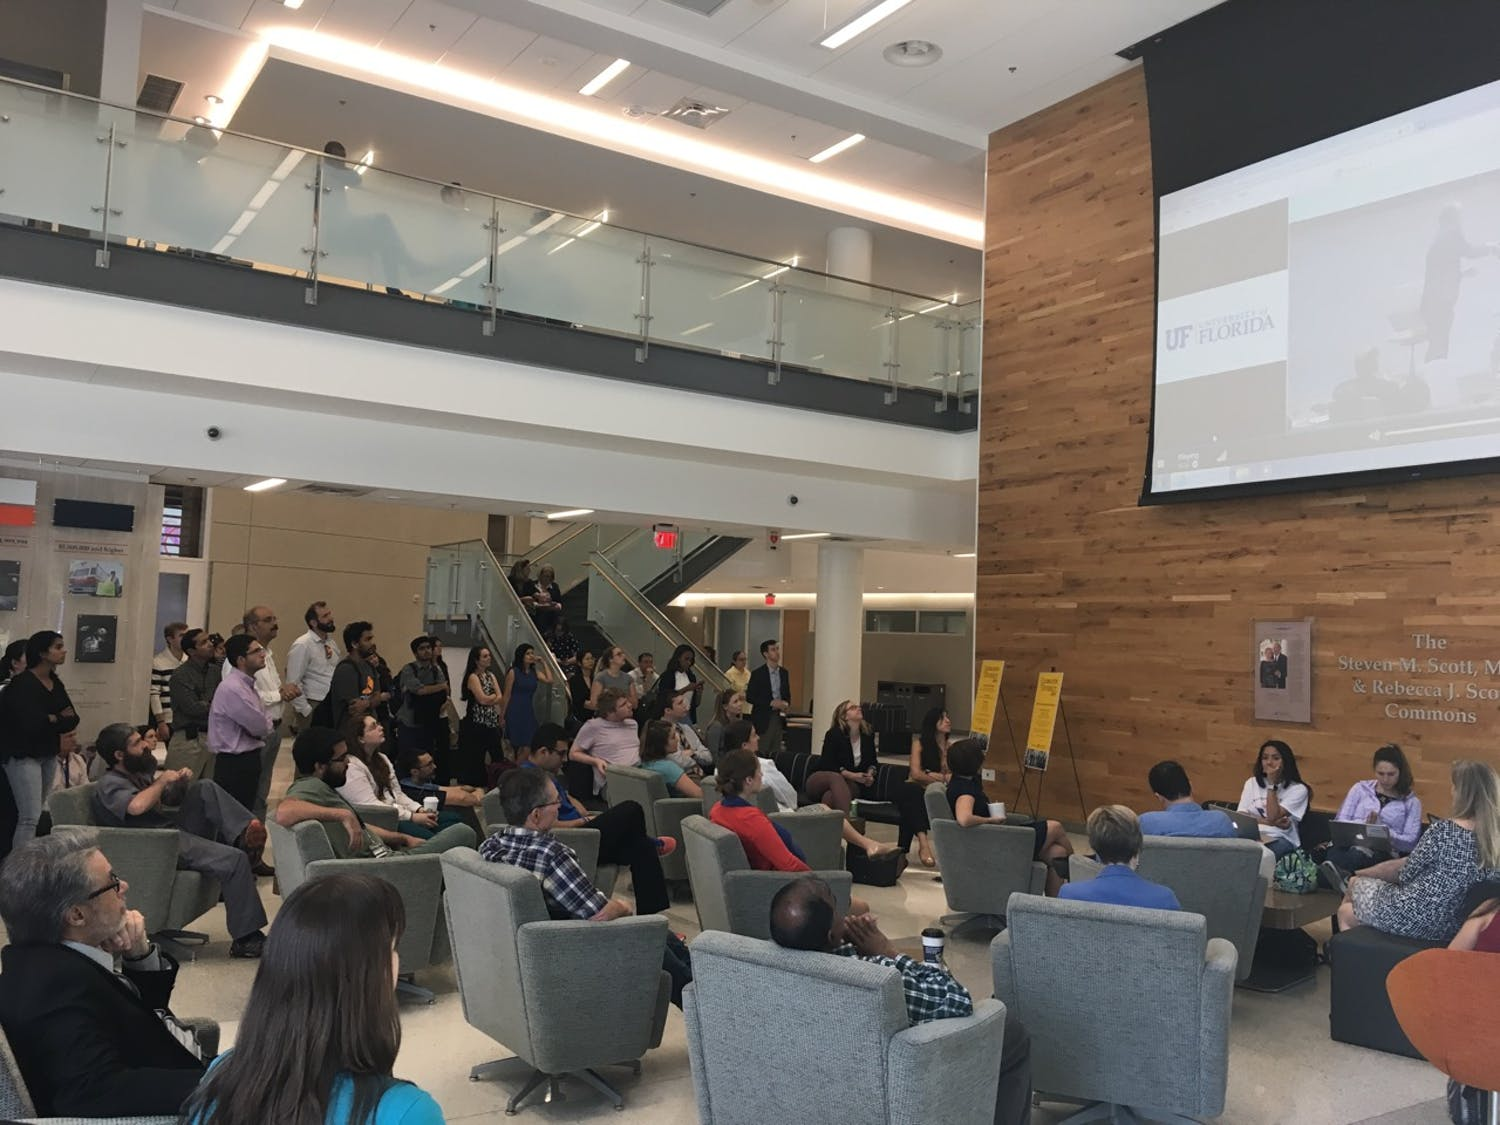 About 250 people watch a livestream of National Institutes of Health Director Dr. Francis Collins speak to UF students and faculty in the North Learning Studies Room of the Harrell Medical Education Building Monday morning. Collins spoke about the importance of funding STEM research.